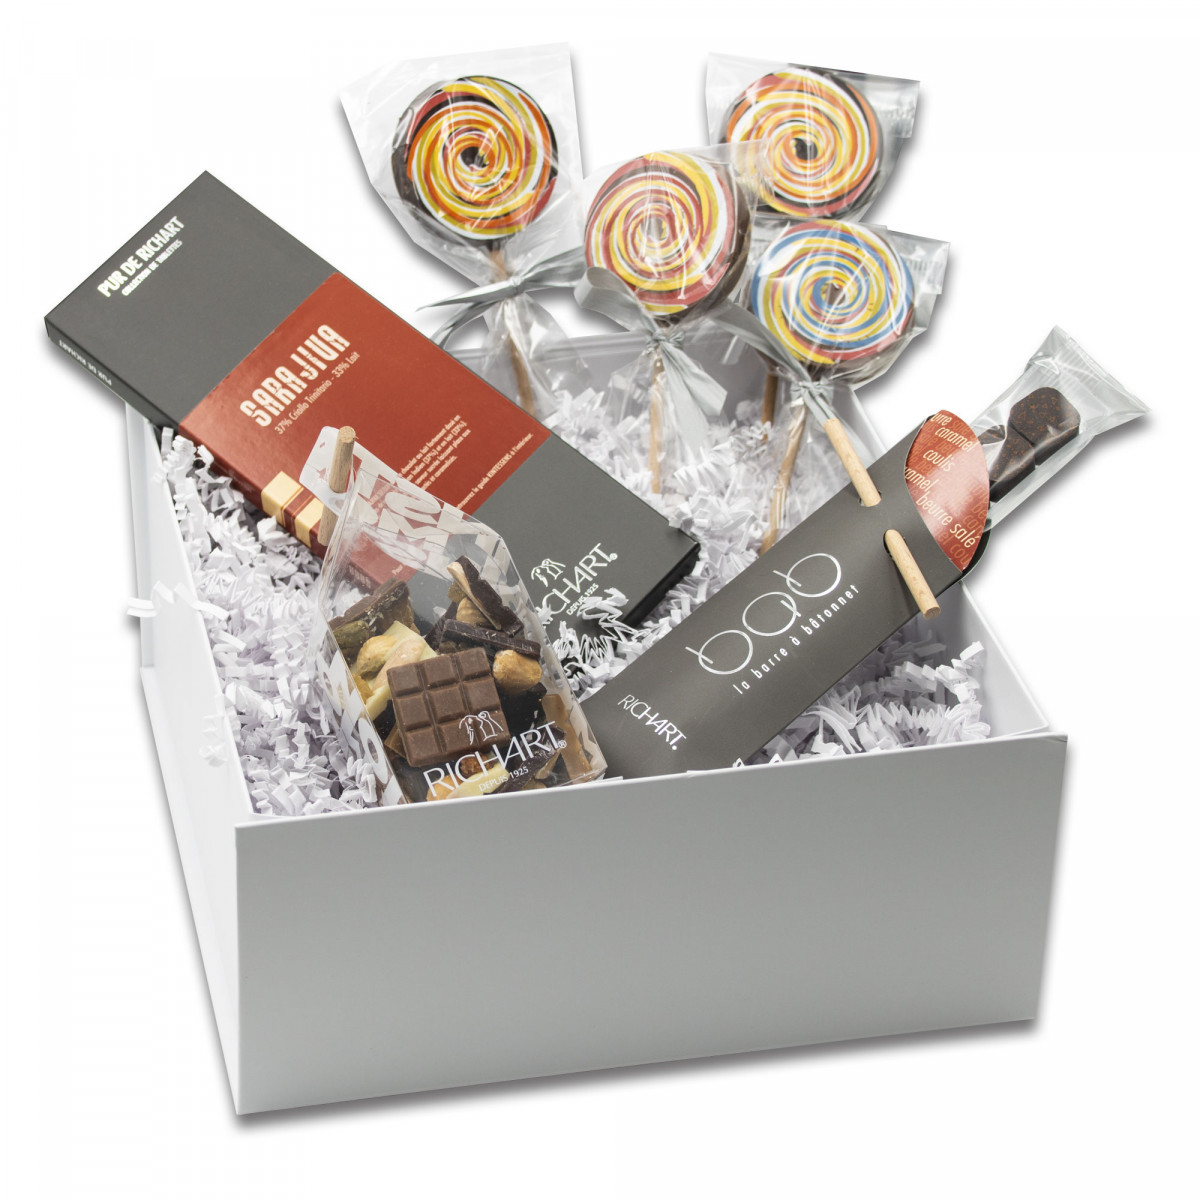 In my schoolbag - assorted chocolates gift basket